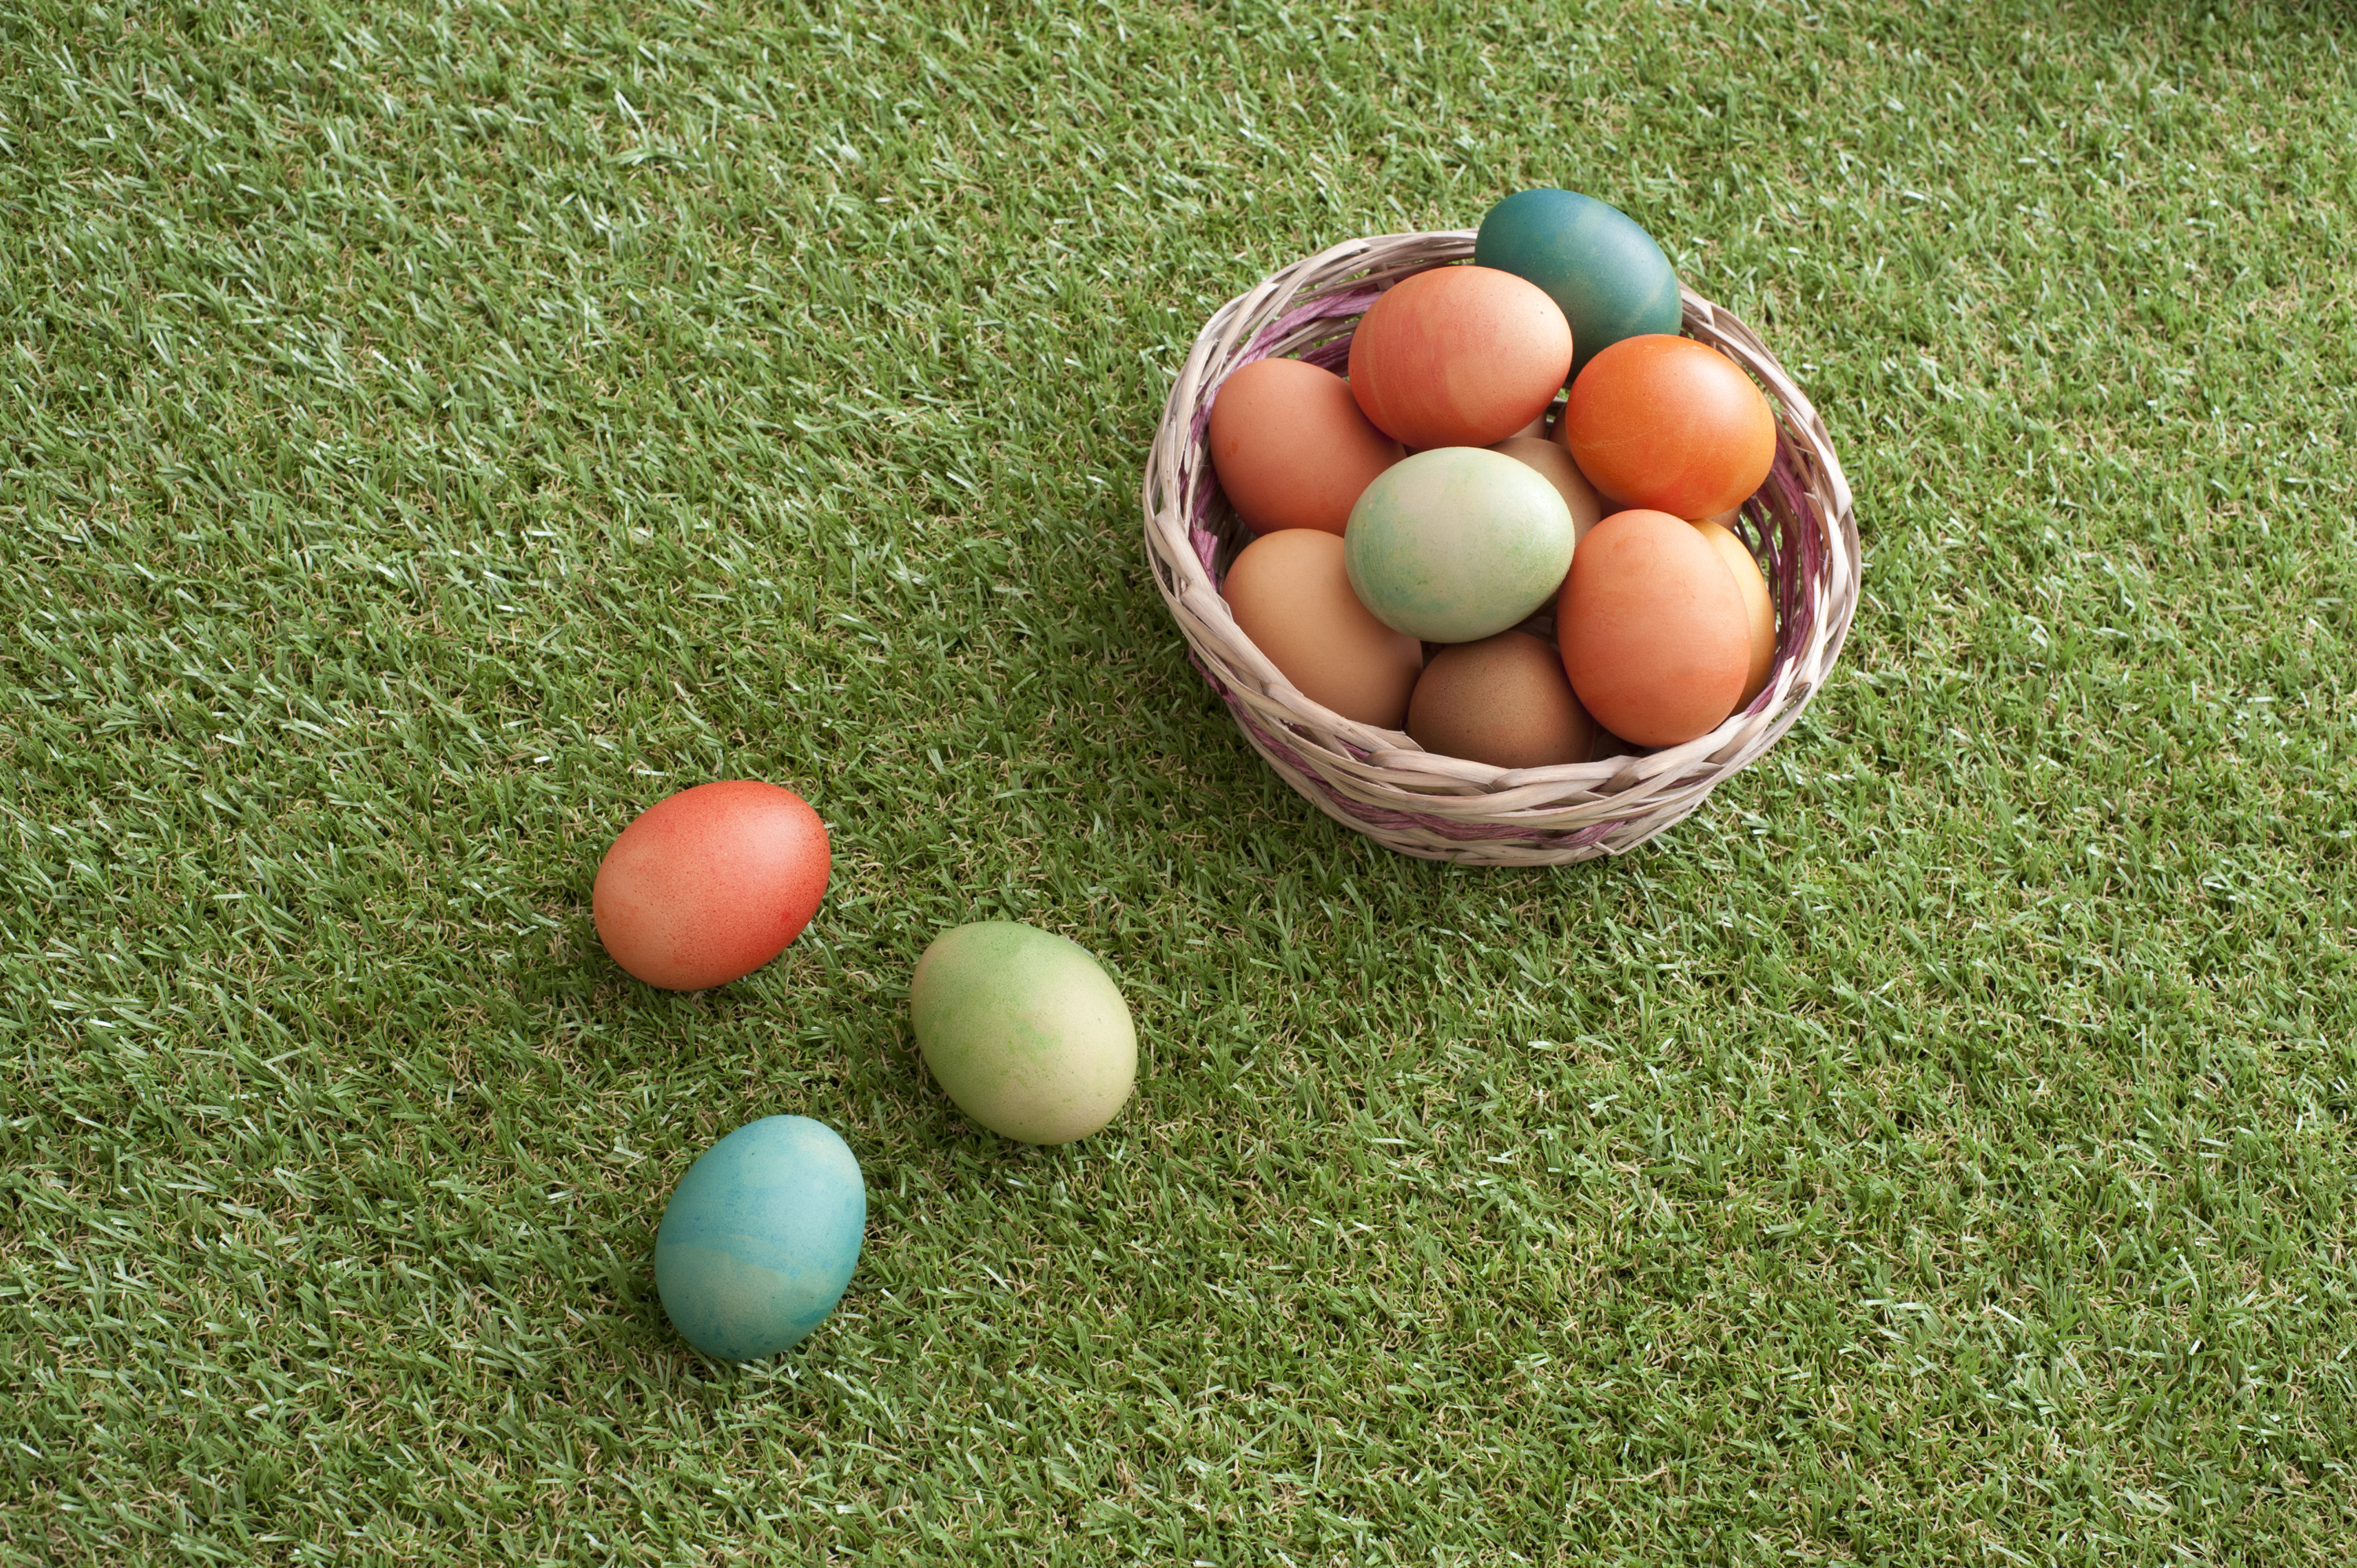 easter_egg_basket.jpg - Country Easter with homemade dyed boiled eggs in a wicker basket on green spring grass with three laid to the side and copy space, high angle view